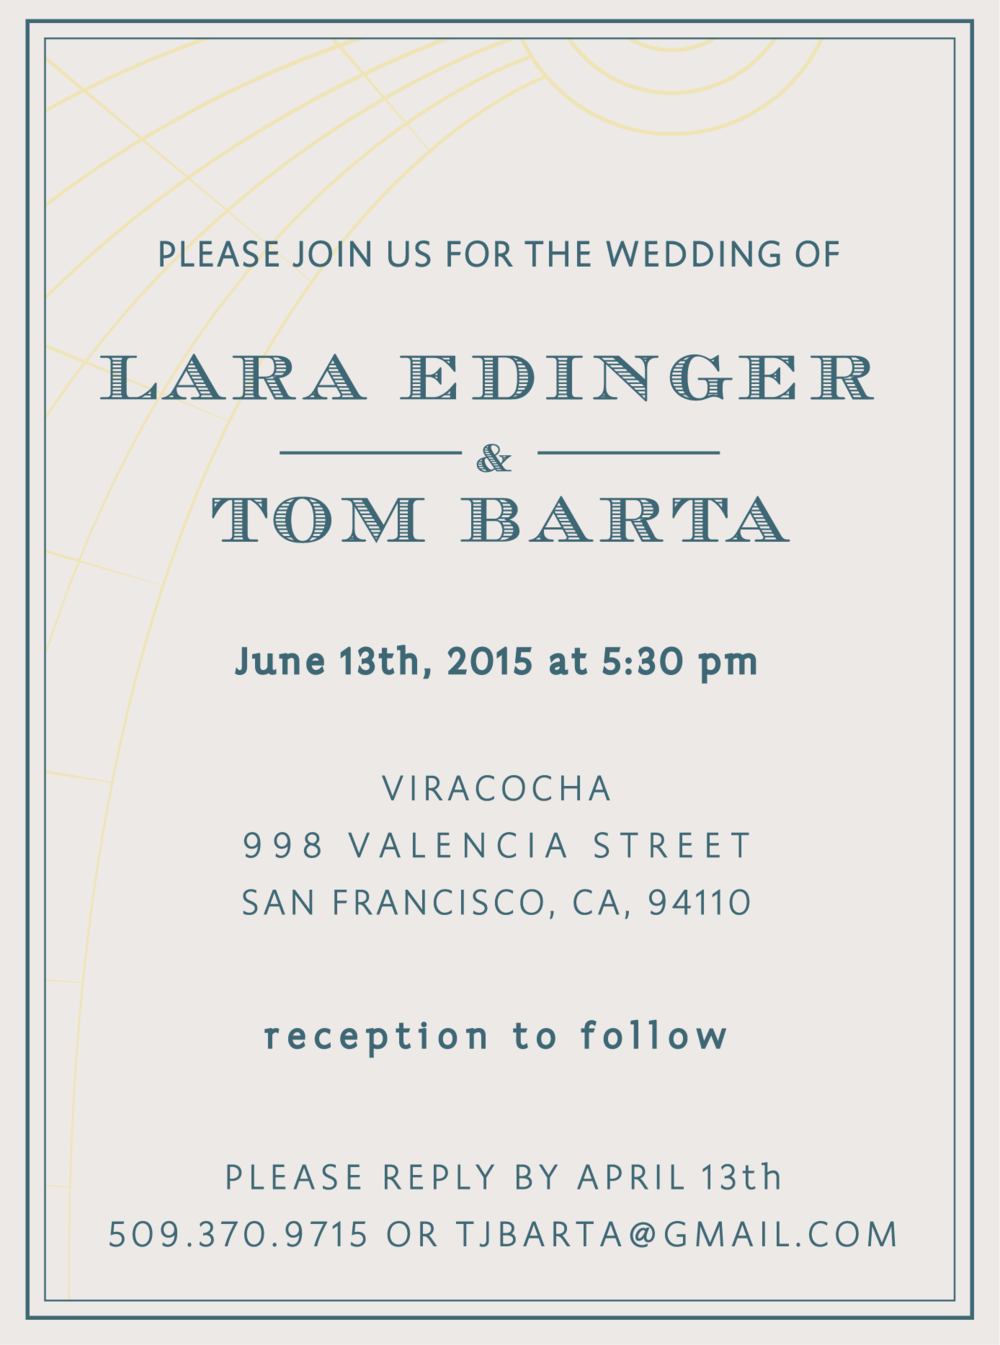 Edinger & Barta Wedding Invitations